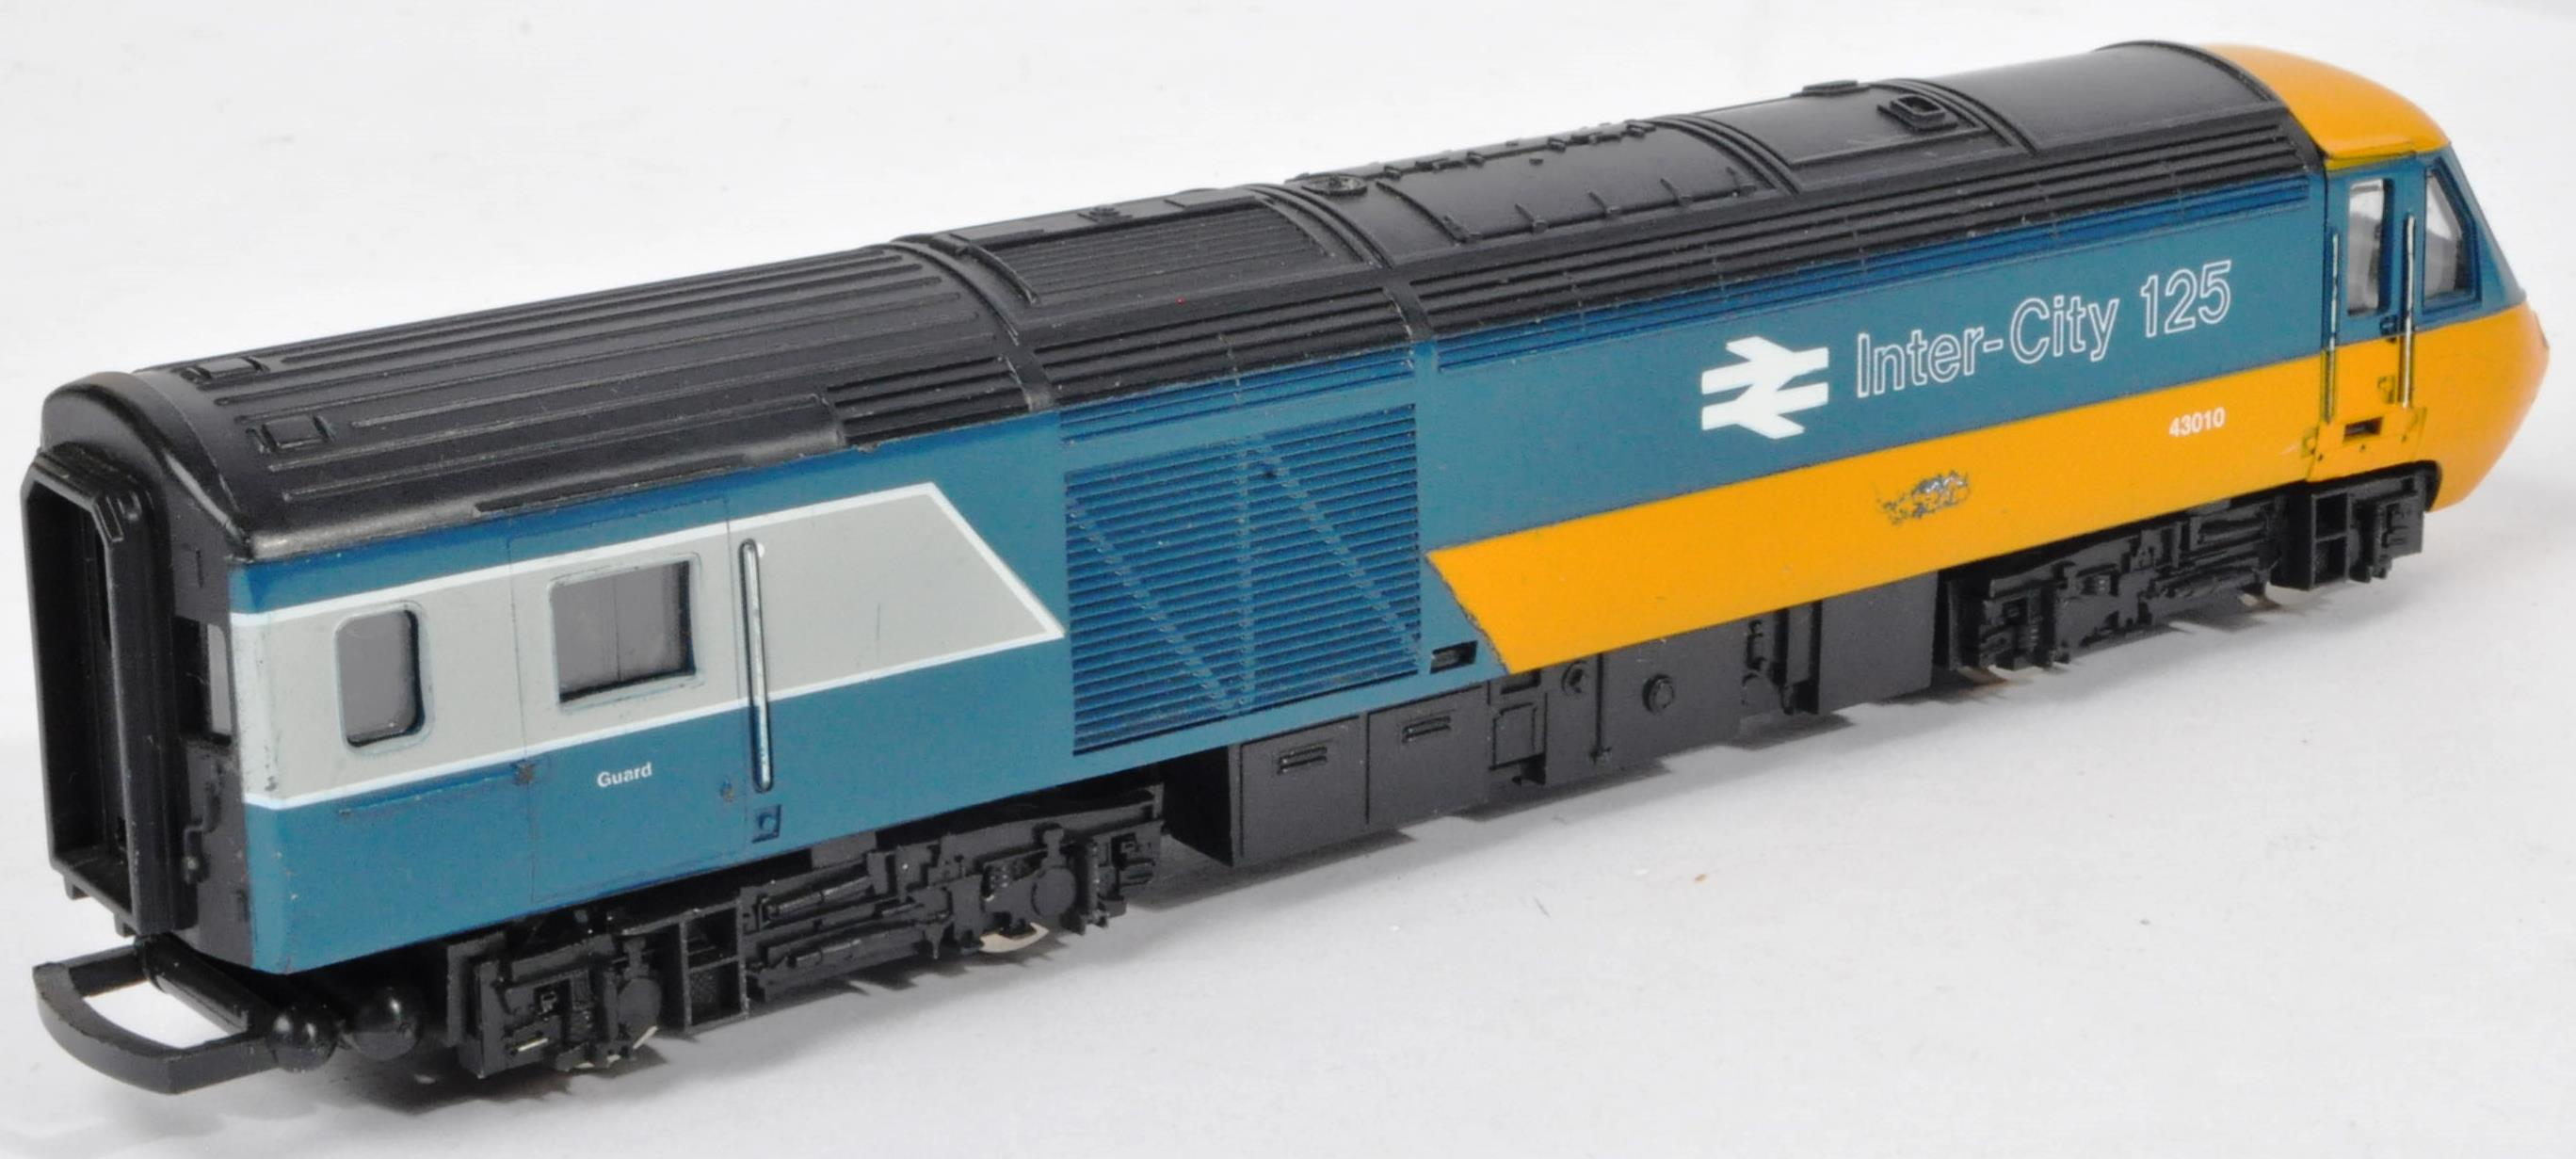 COLLECTION OF ASSORTED DIESEL 00 GAUGE TRAINSET LOCOMOTIVES & CARRIAGES - Image 6 of 10